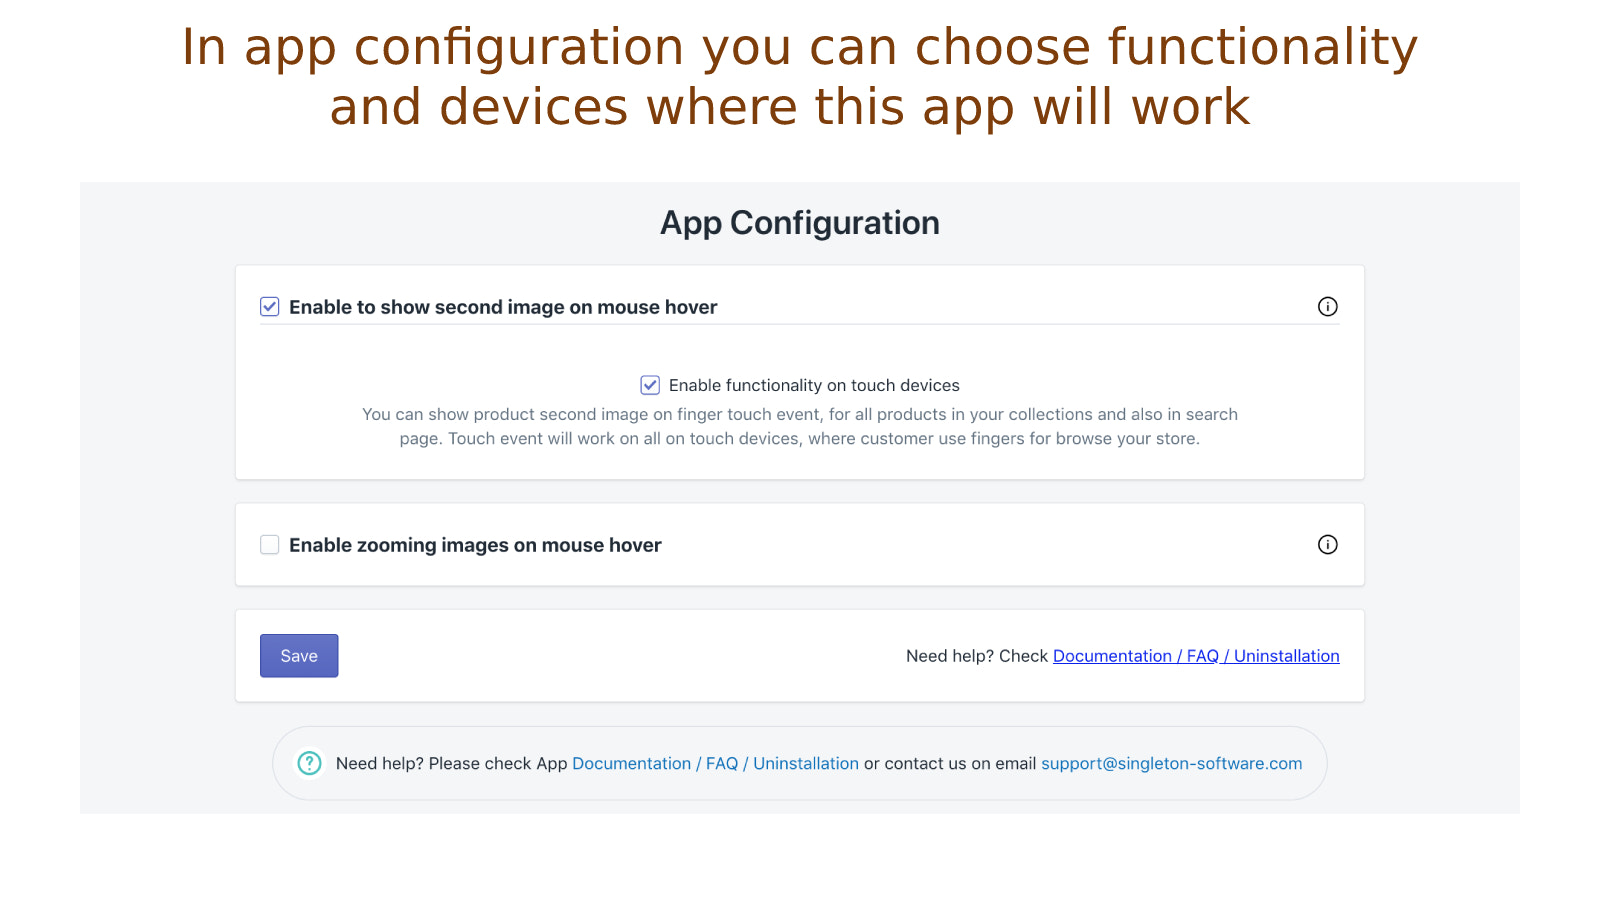 In app configuration, you can choose devices where app will work